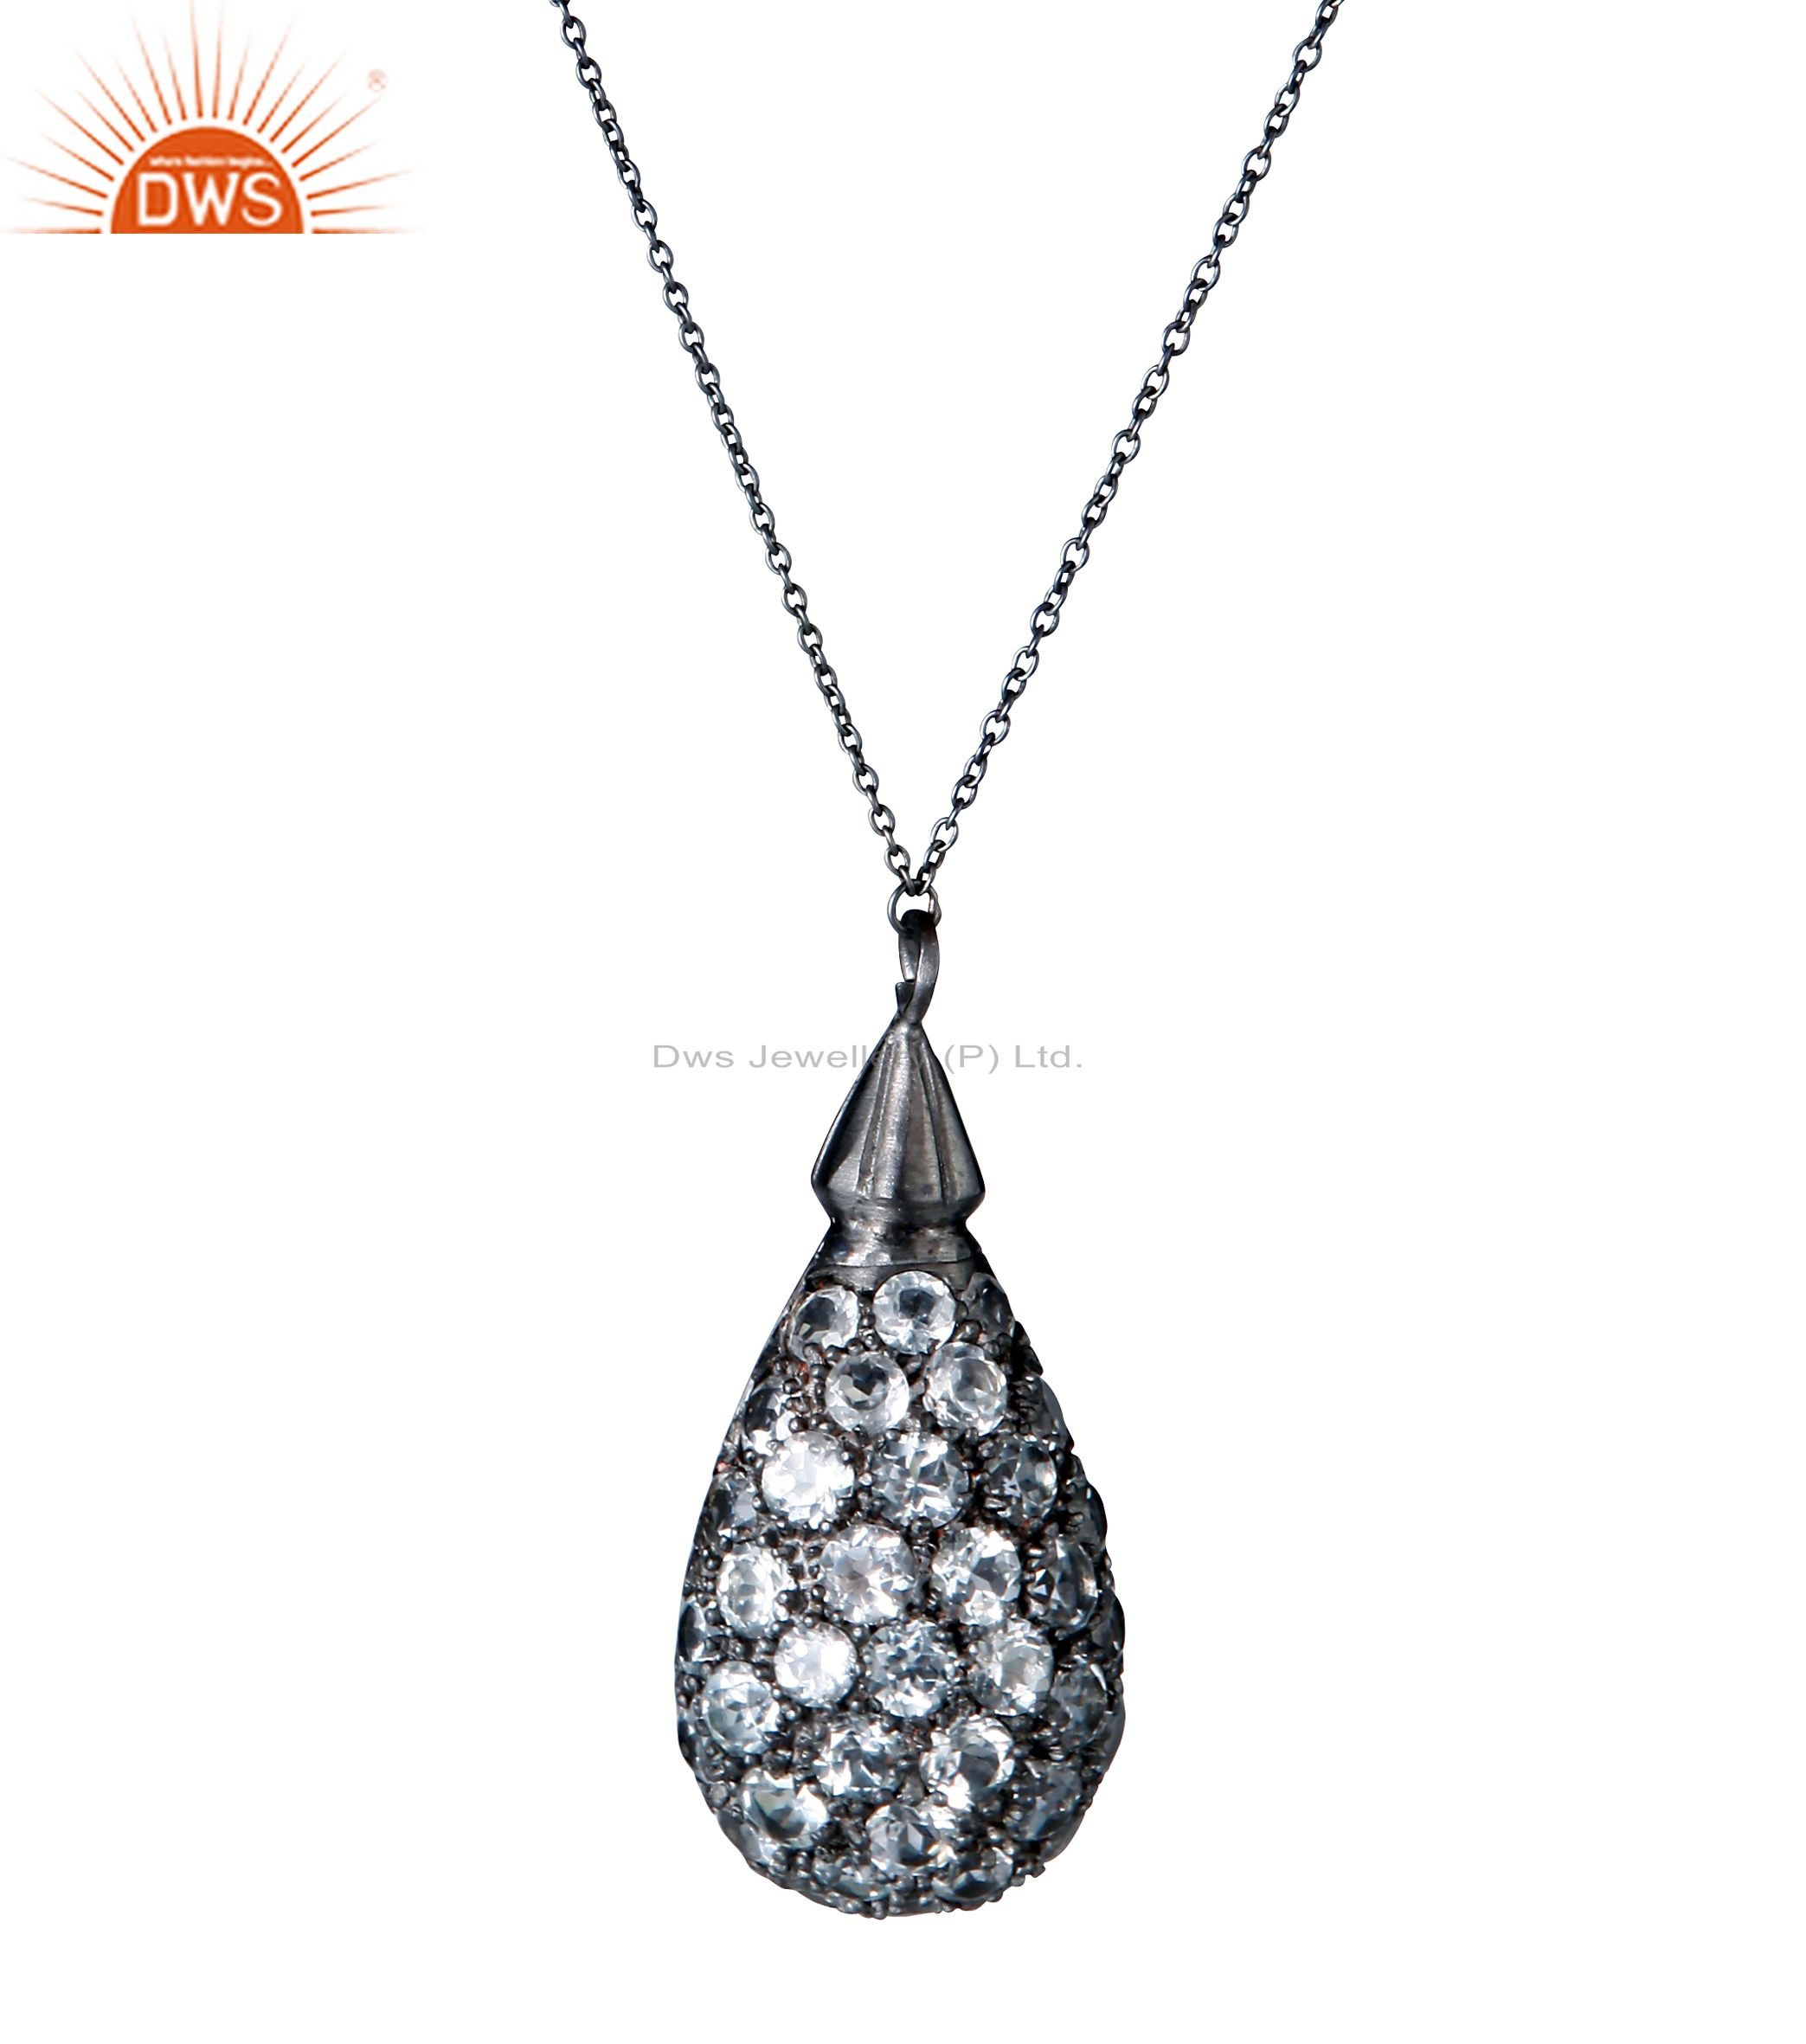 Black Rhodium Plated Sterling Silver White Topaz Drop Pendant With Chain